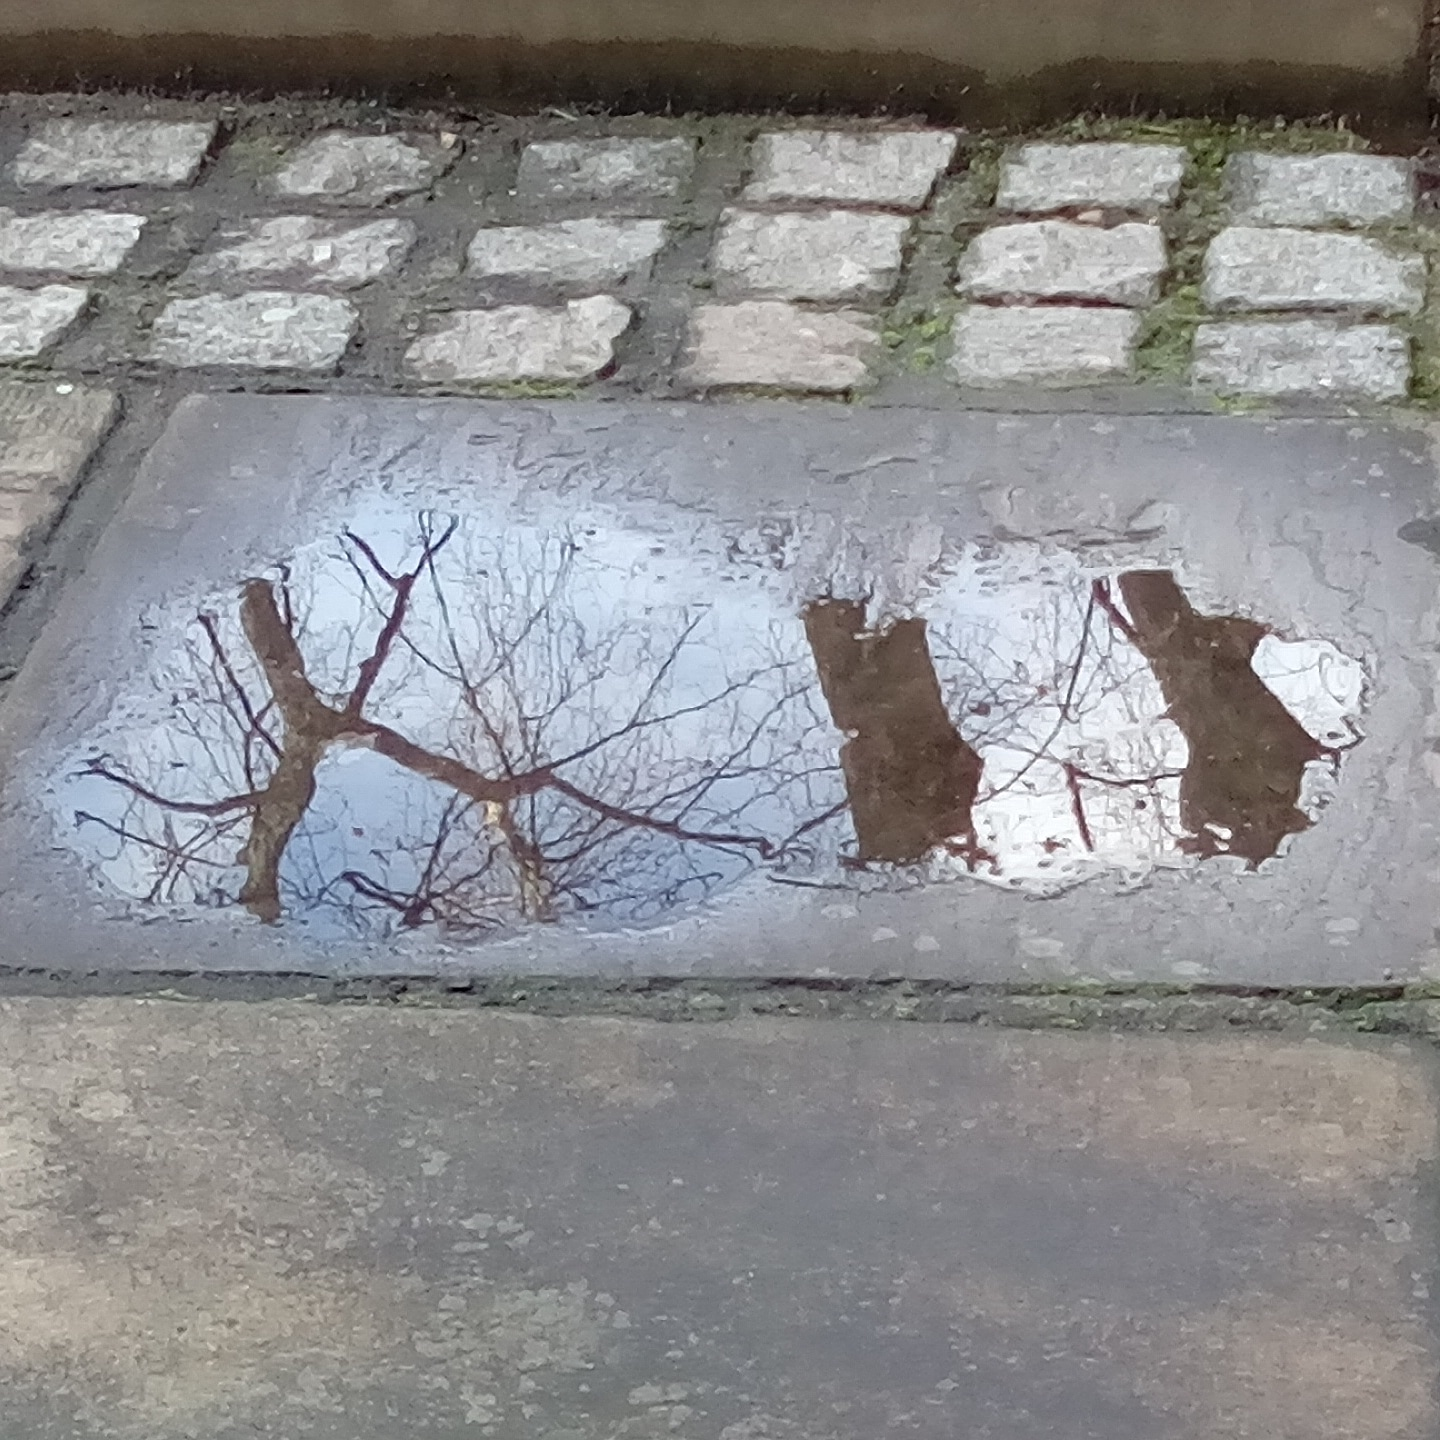 Reflections on a puddle, St John Zachary